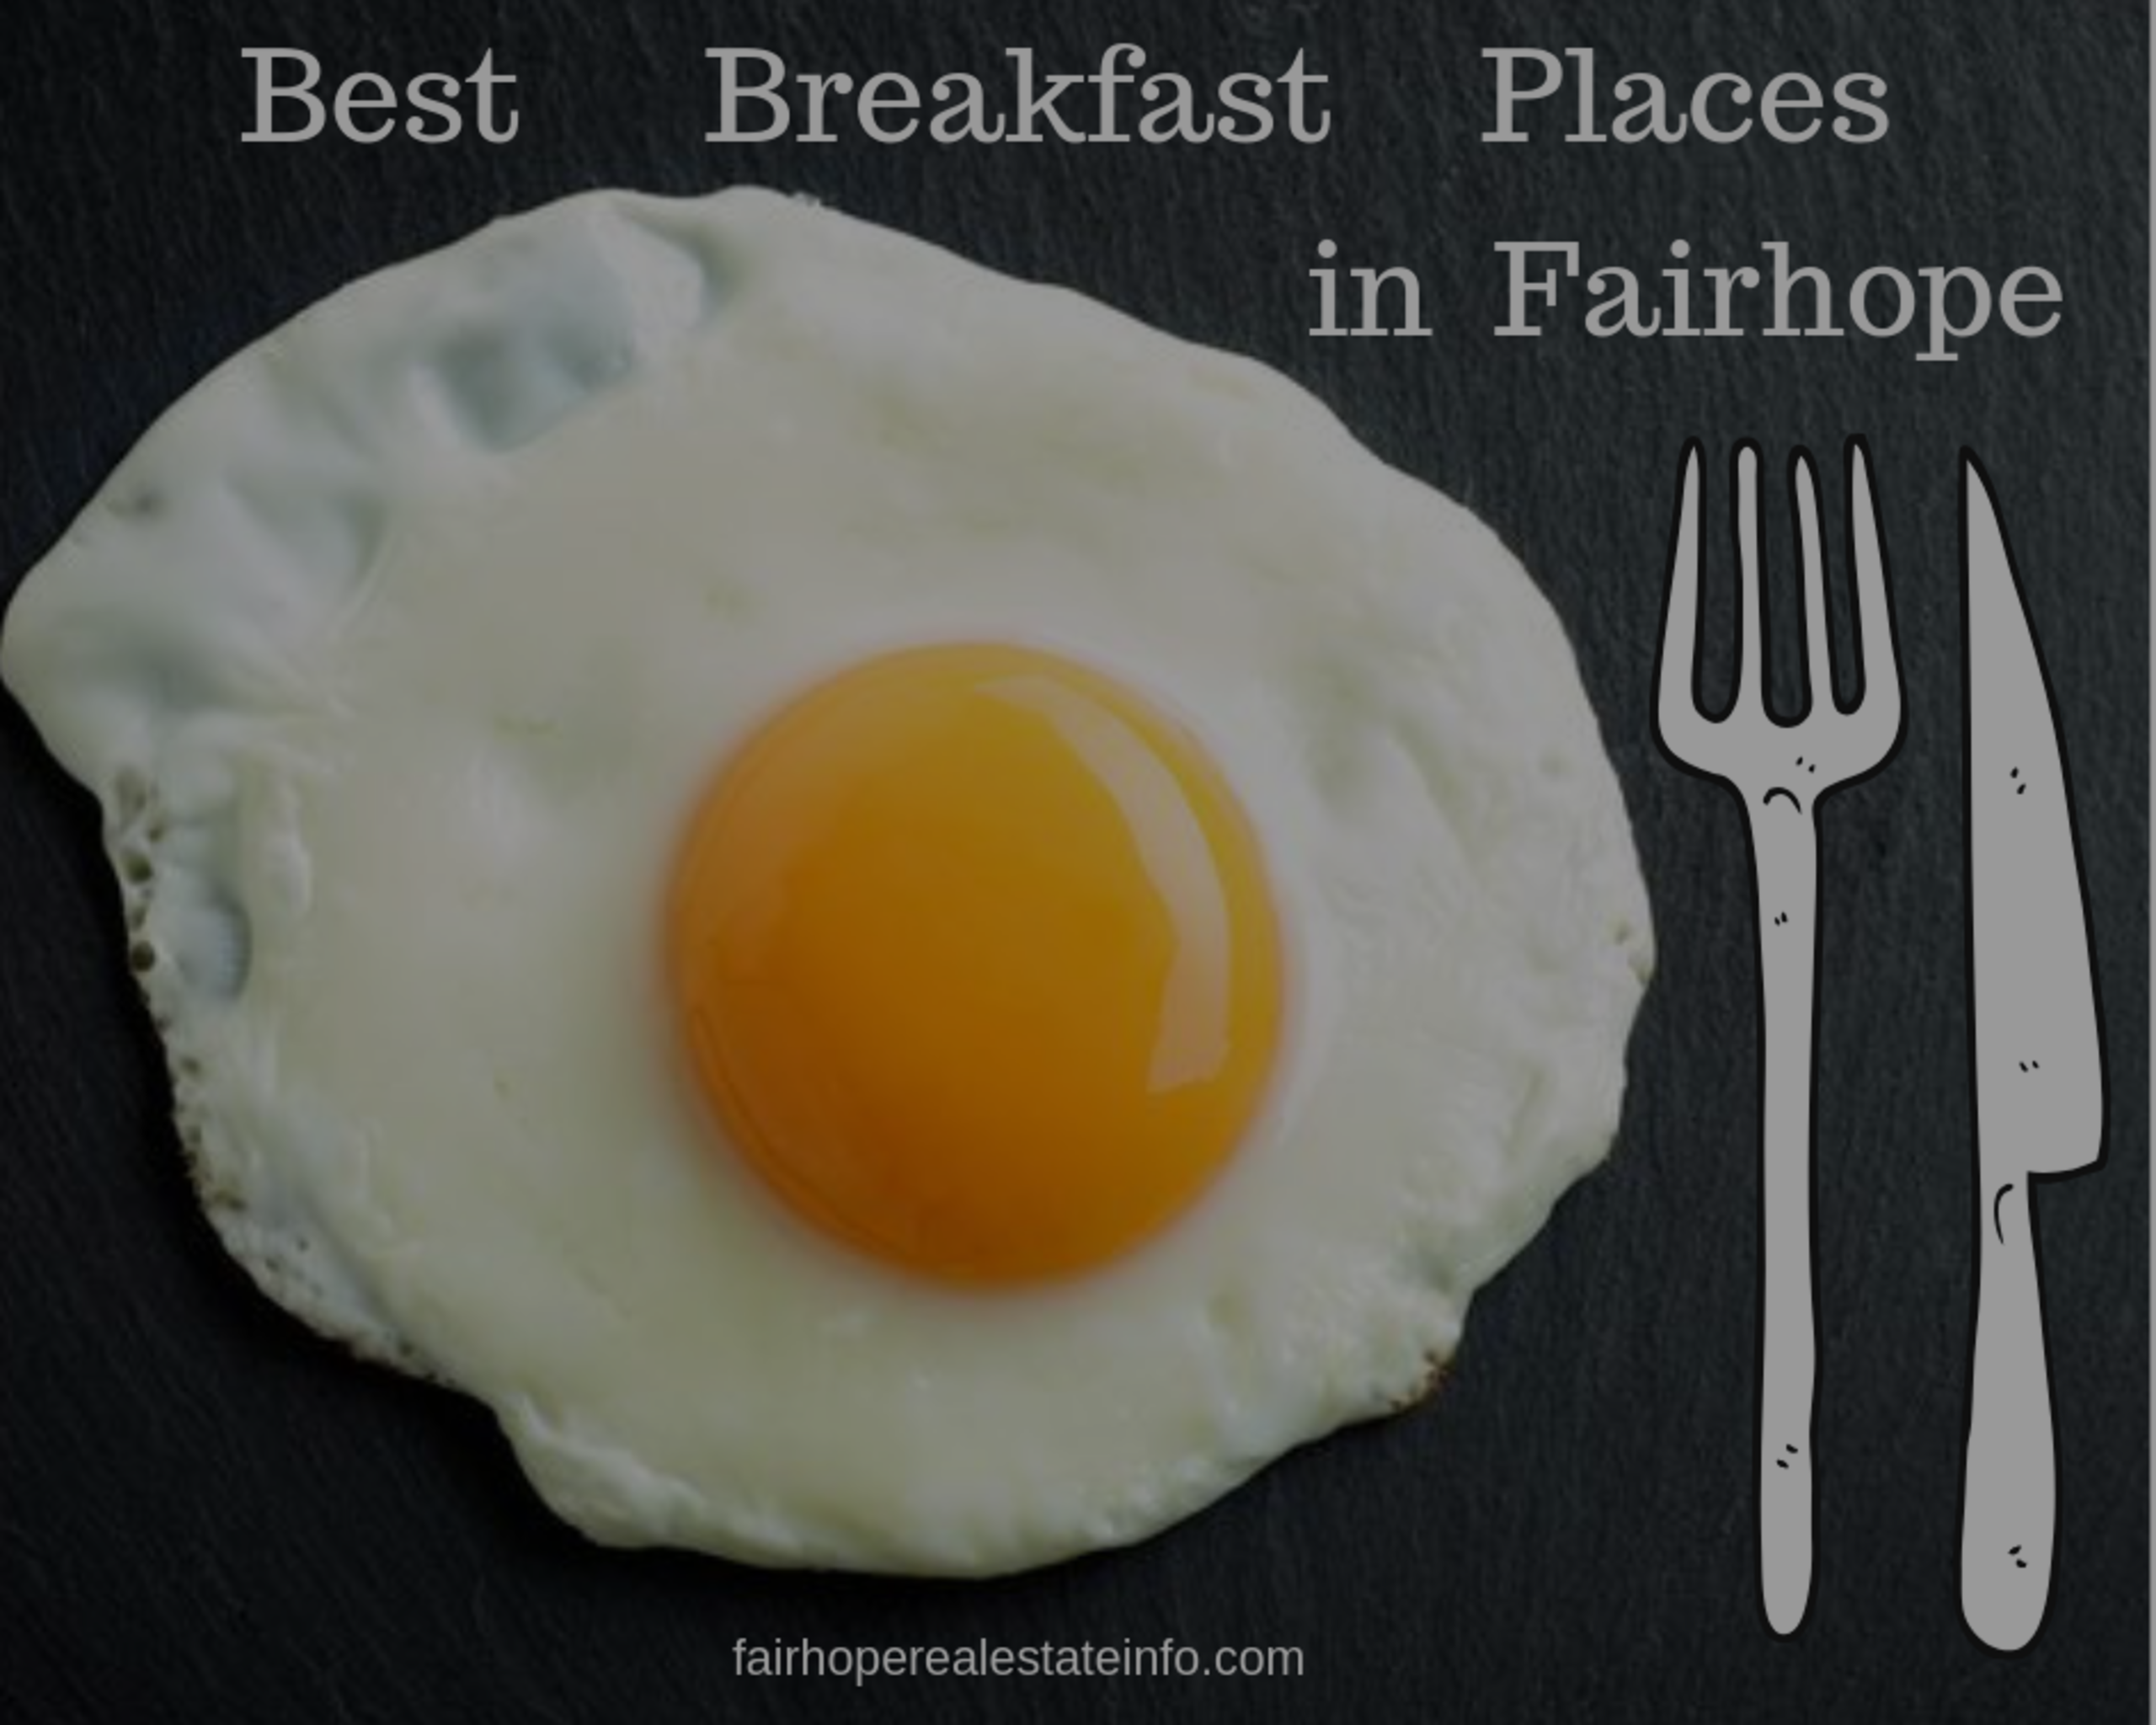 Best Places for Breakfast in Fairhope